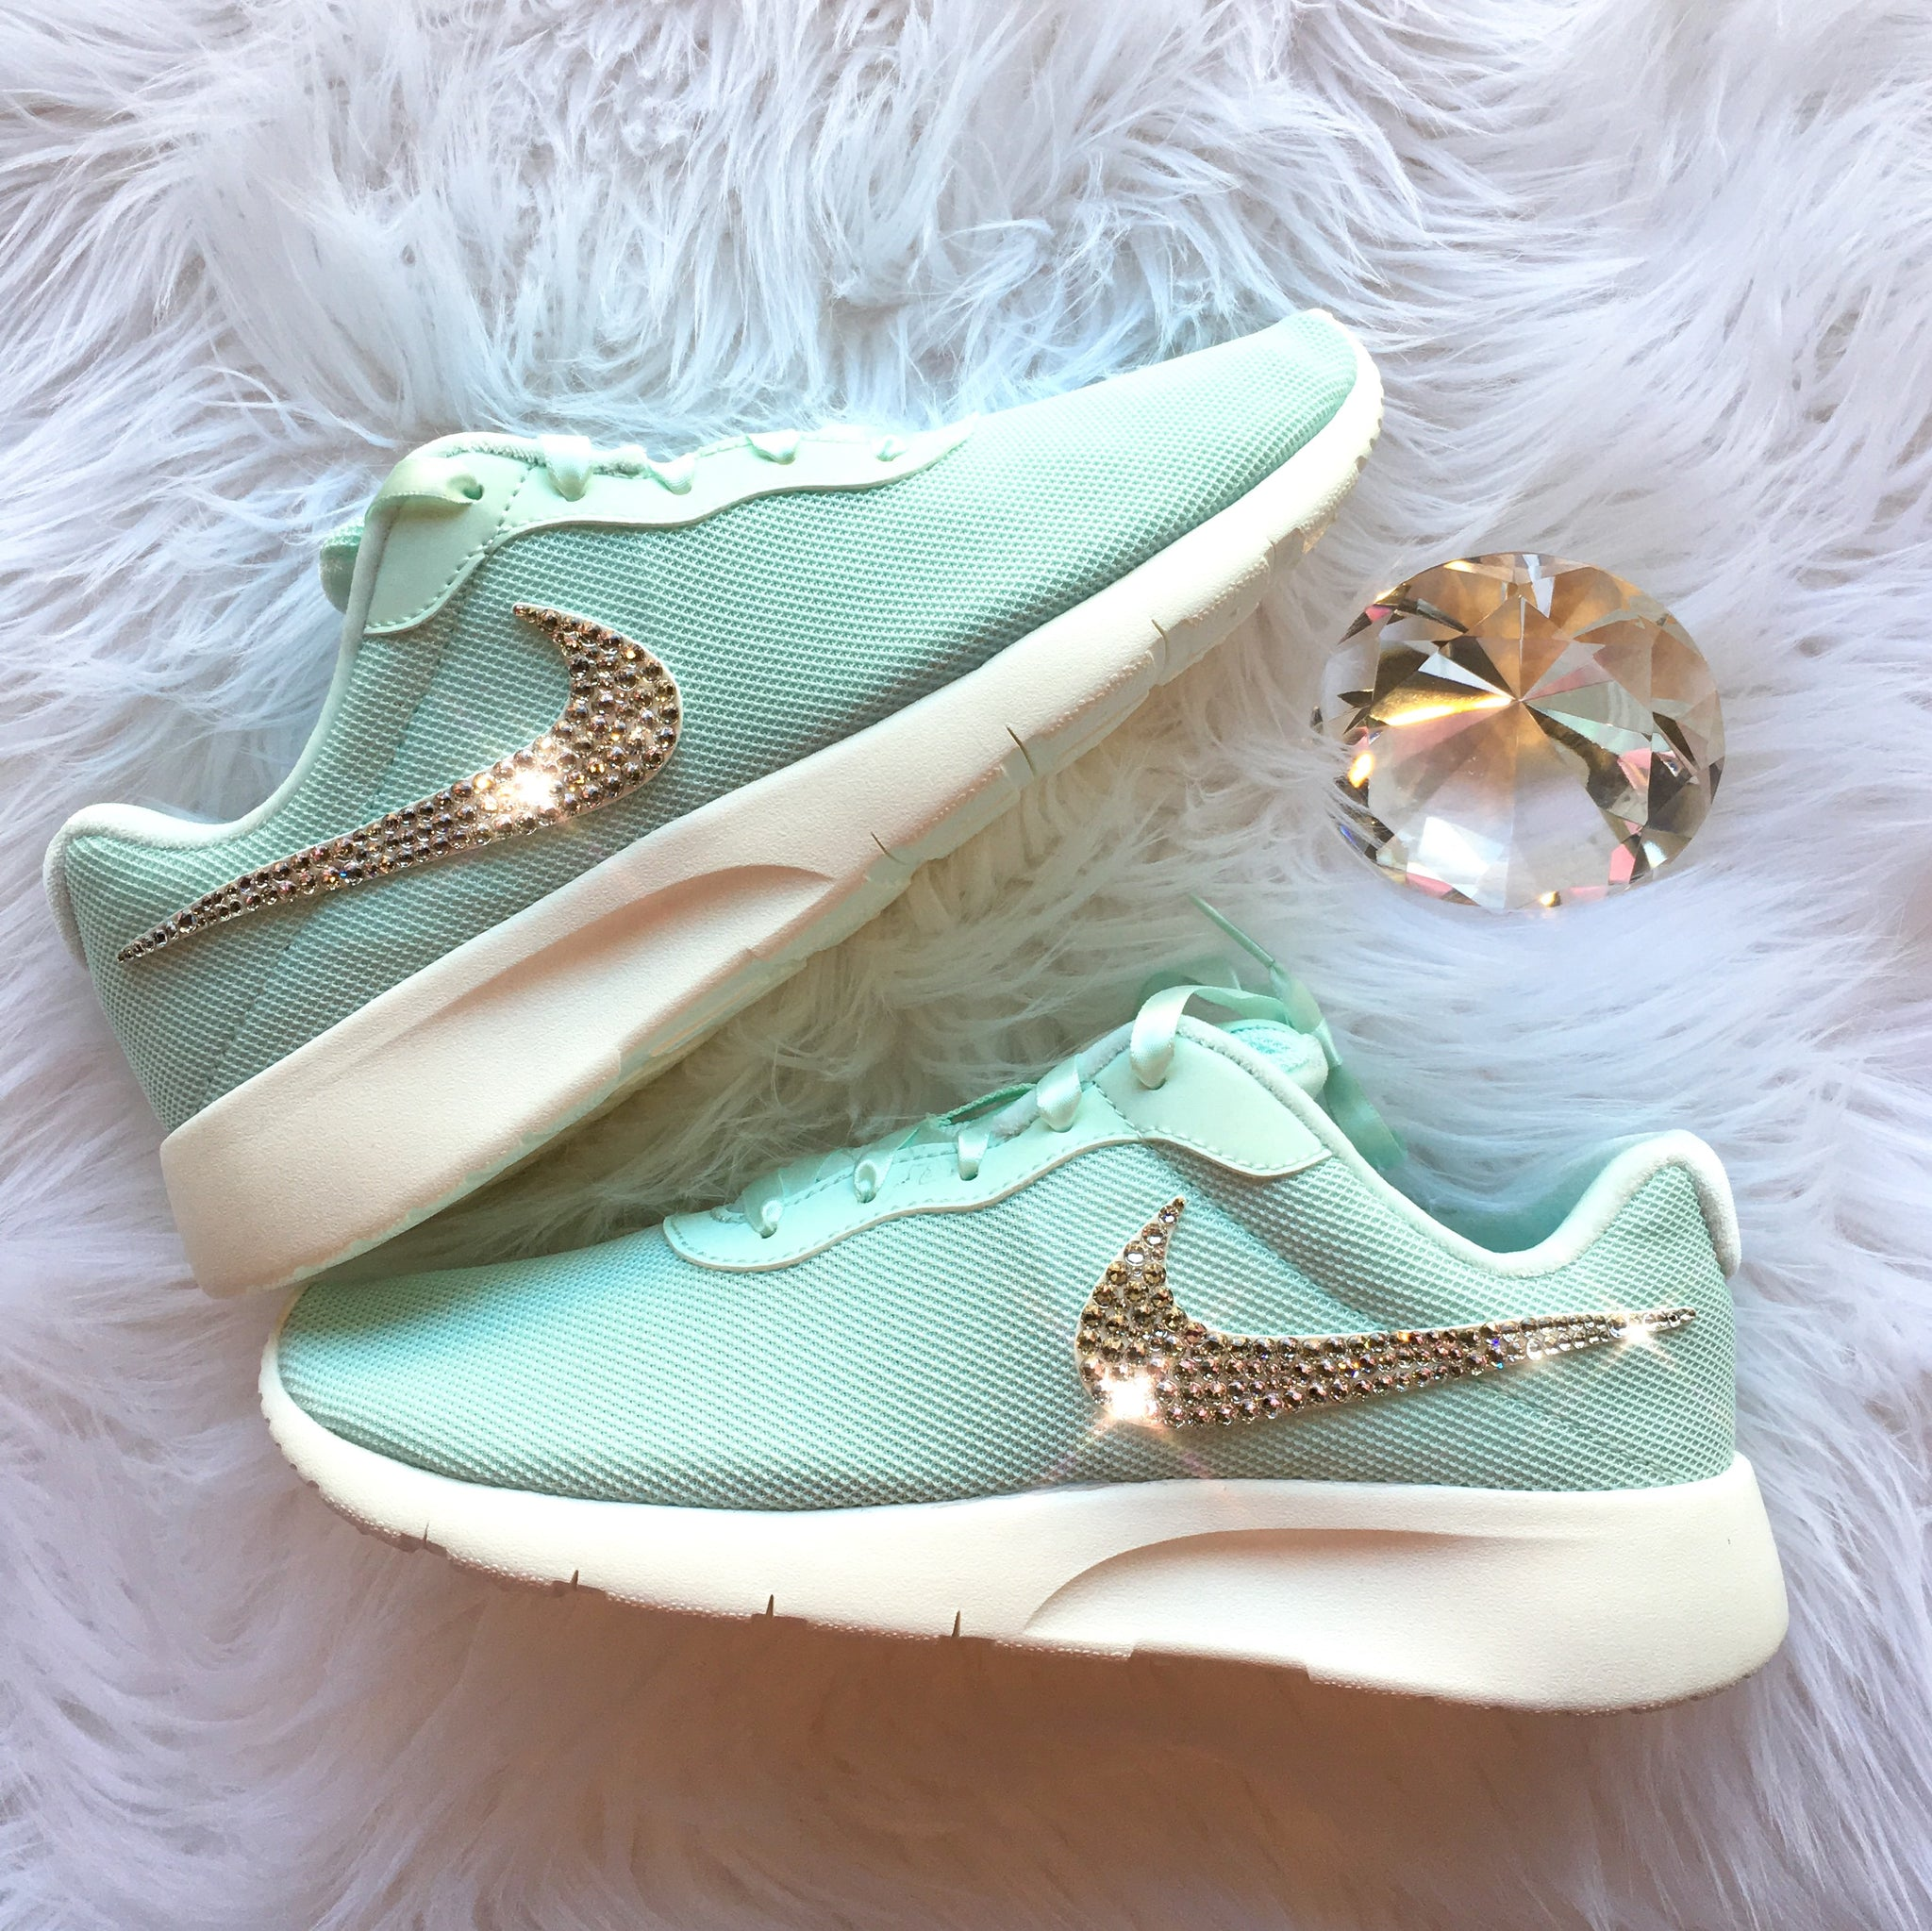 brand new 747b7 46d53 ... Bling Nike Tanjun Shoes with Swarovski Crystal Bedazzled Swooshes    Igloo   Sail (Mint ...